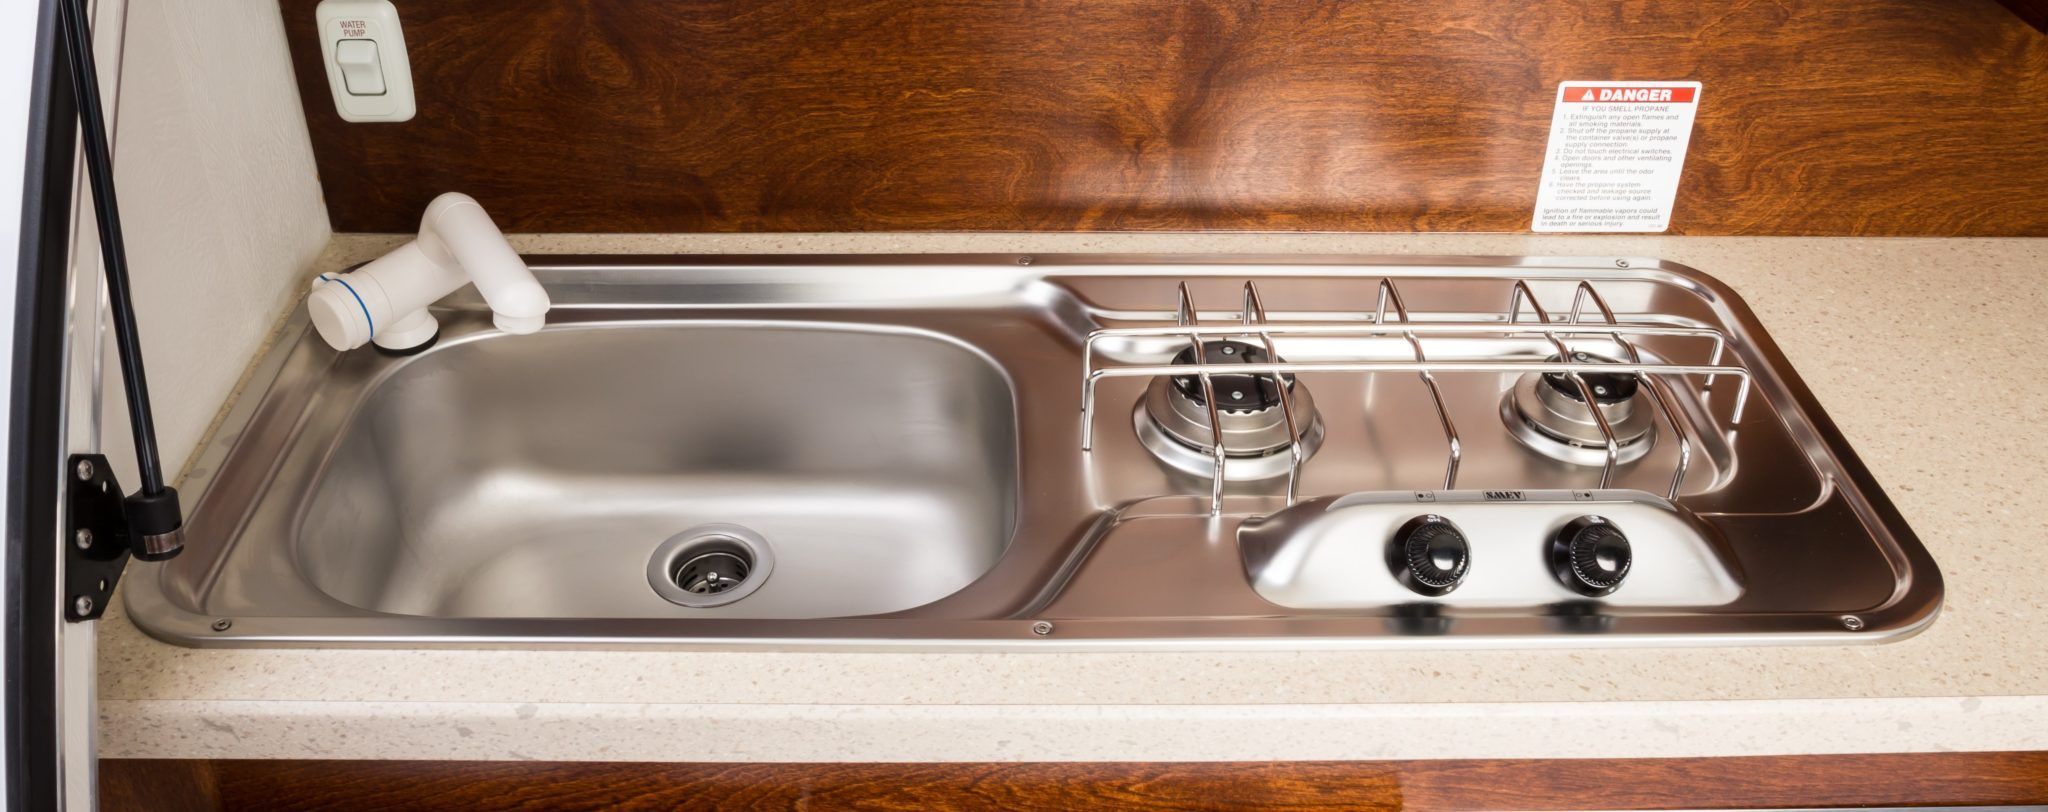 Sink And Stove Combo Nucamp Rv T G Teardrop Trailer Sink